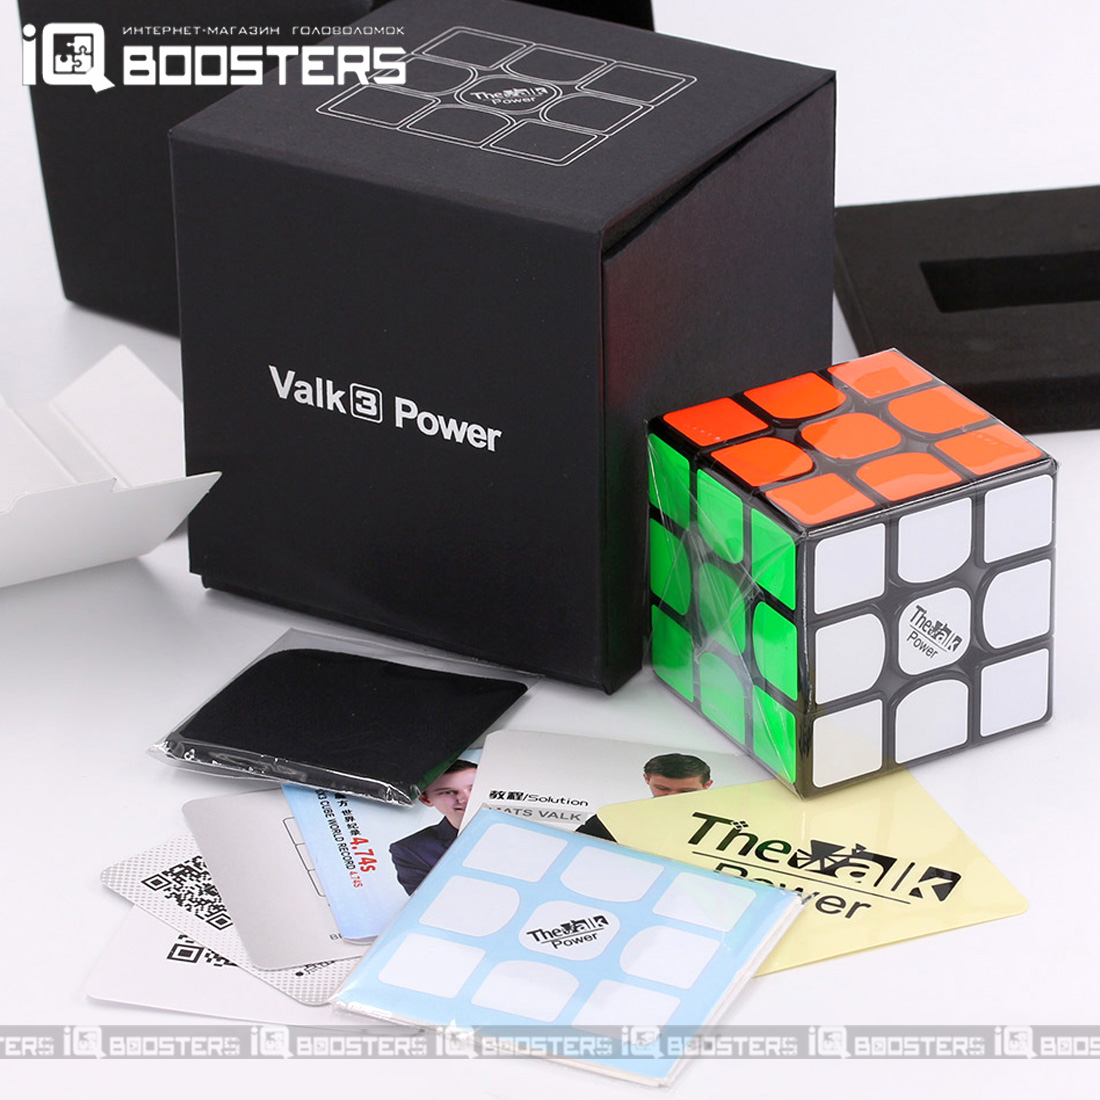 valk3_power_b2